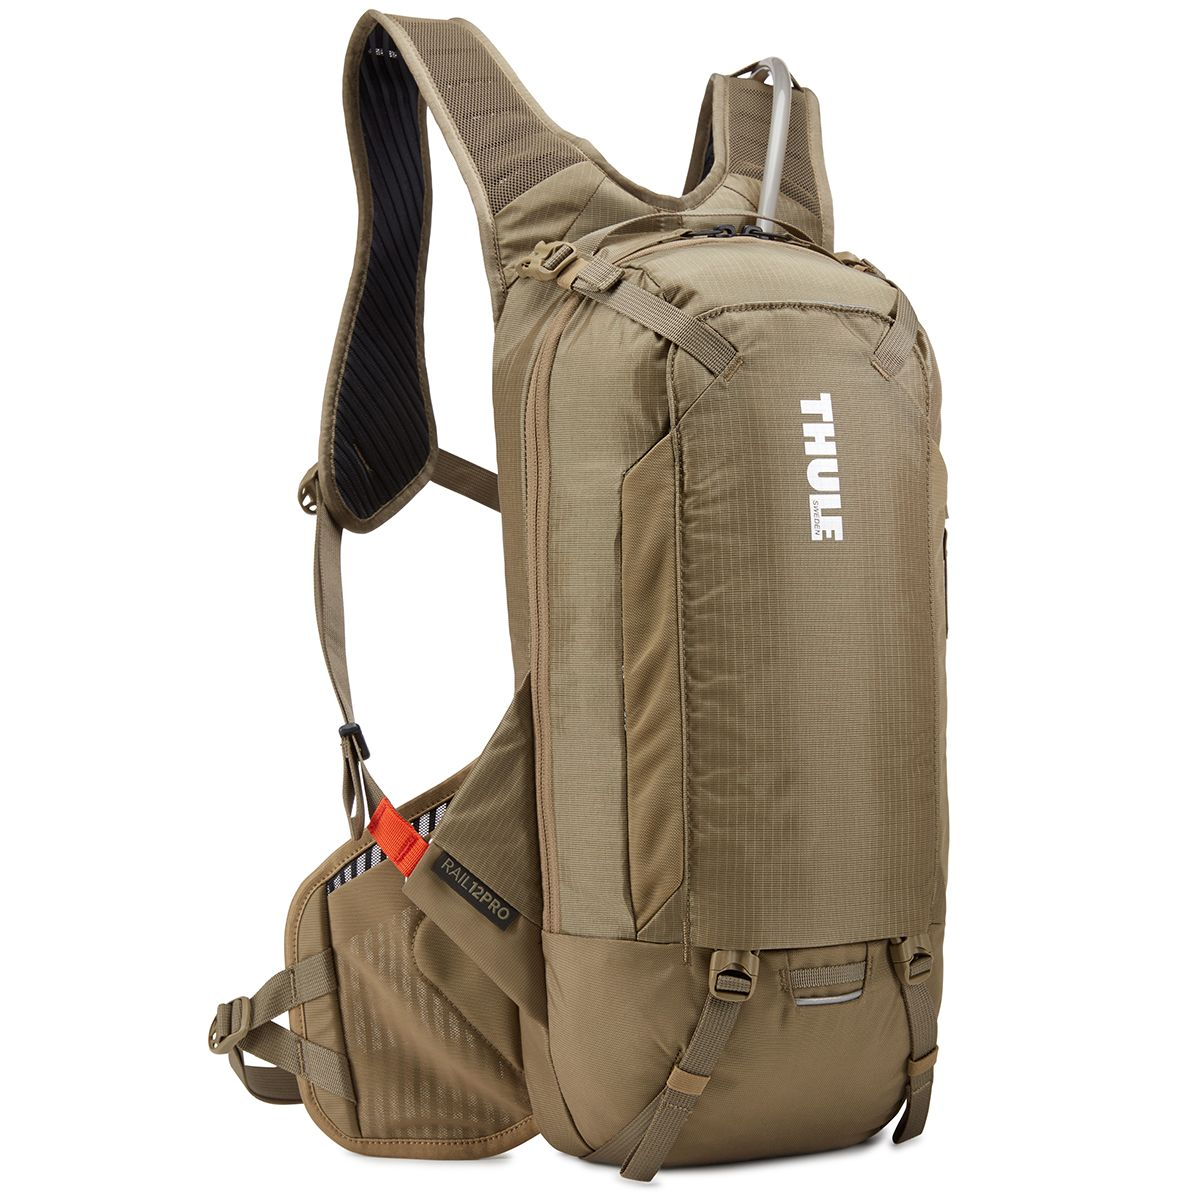 Rail 12L Pro hydration and protector backpack